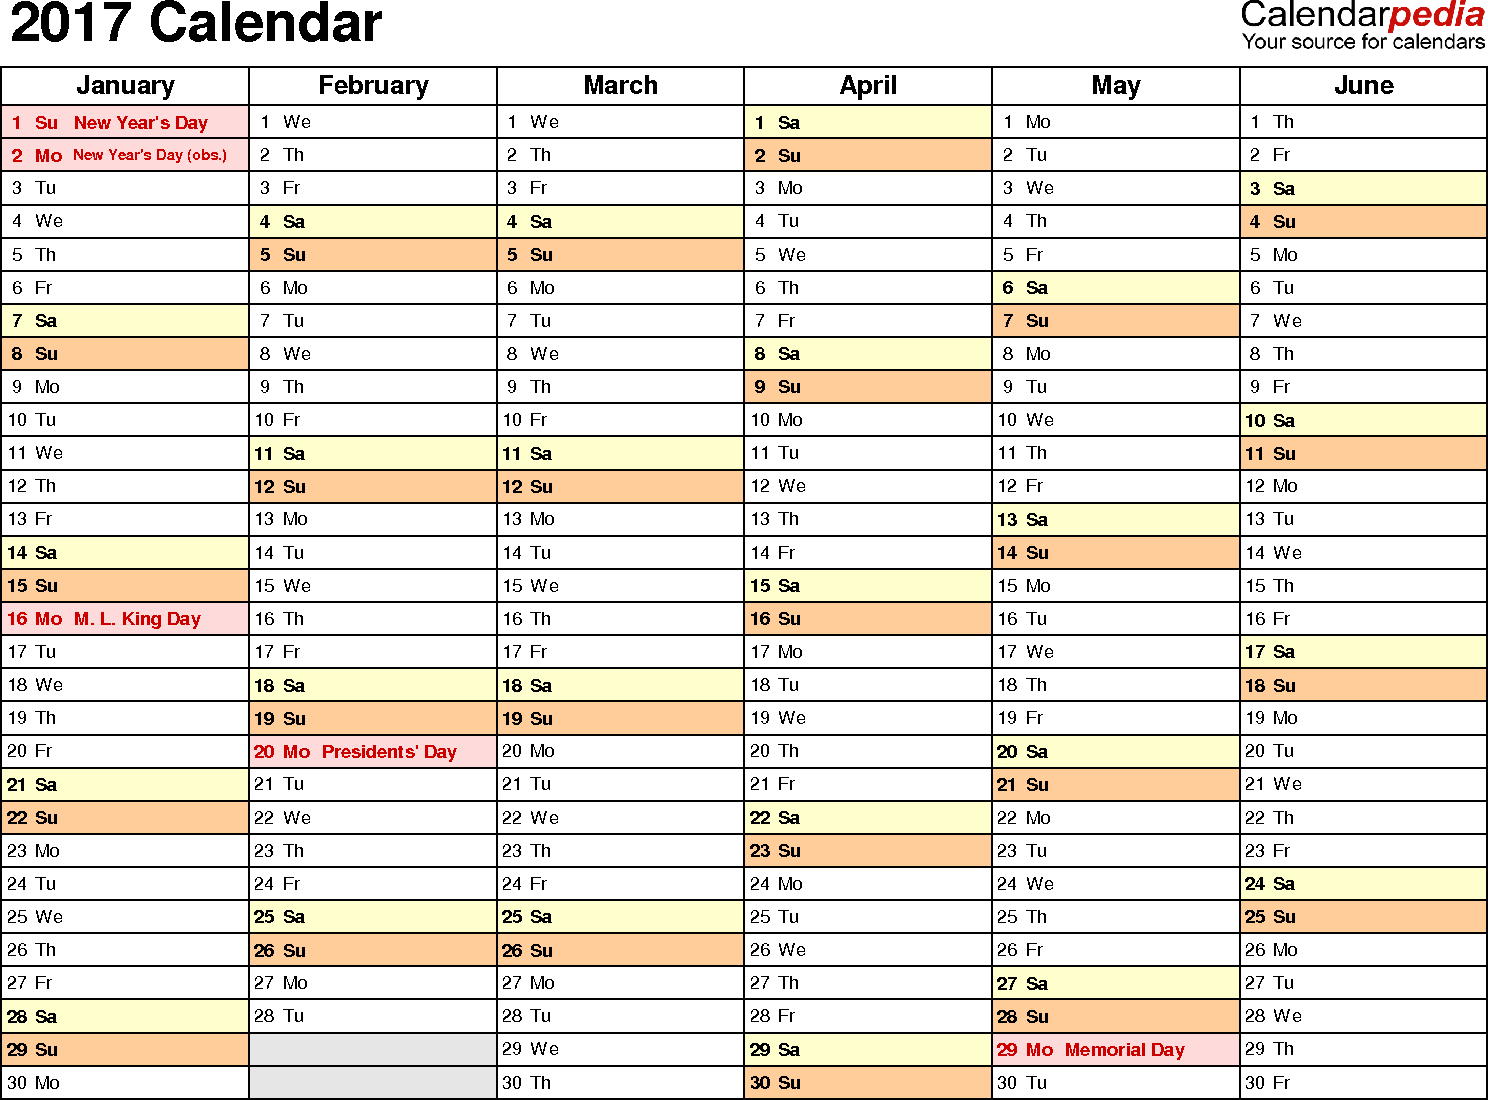 Ediblewildsus  Pleasant  Calendar  Download  Free Printable Excel Templates Xls With Excellent Template   Calendar For Excel Months Horizontally  Pages Landscape Orientation With Charming Display Duplicates In Excel Also Financial Models In Excel In Addition Power Pivot For Excel  And Convert Minutes To Hours Excel As Well As Excel Sportfishing Schedule Additionally Present Value Excel Formula From Calendarpediacom With Ediblewildsus  Excellent  Calendar  Download  Free Printable Excel Templates Xls With Charming Template   Calendar For Excel Months Horizontally  Pages Landscape Orientation And Pleasant Display Duplicates In Excel Also Financial Models In Excel In Addition Power Pivot For Excel  From Calendarpediacom